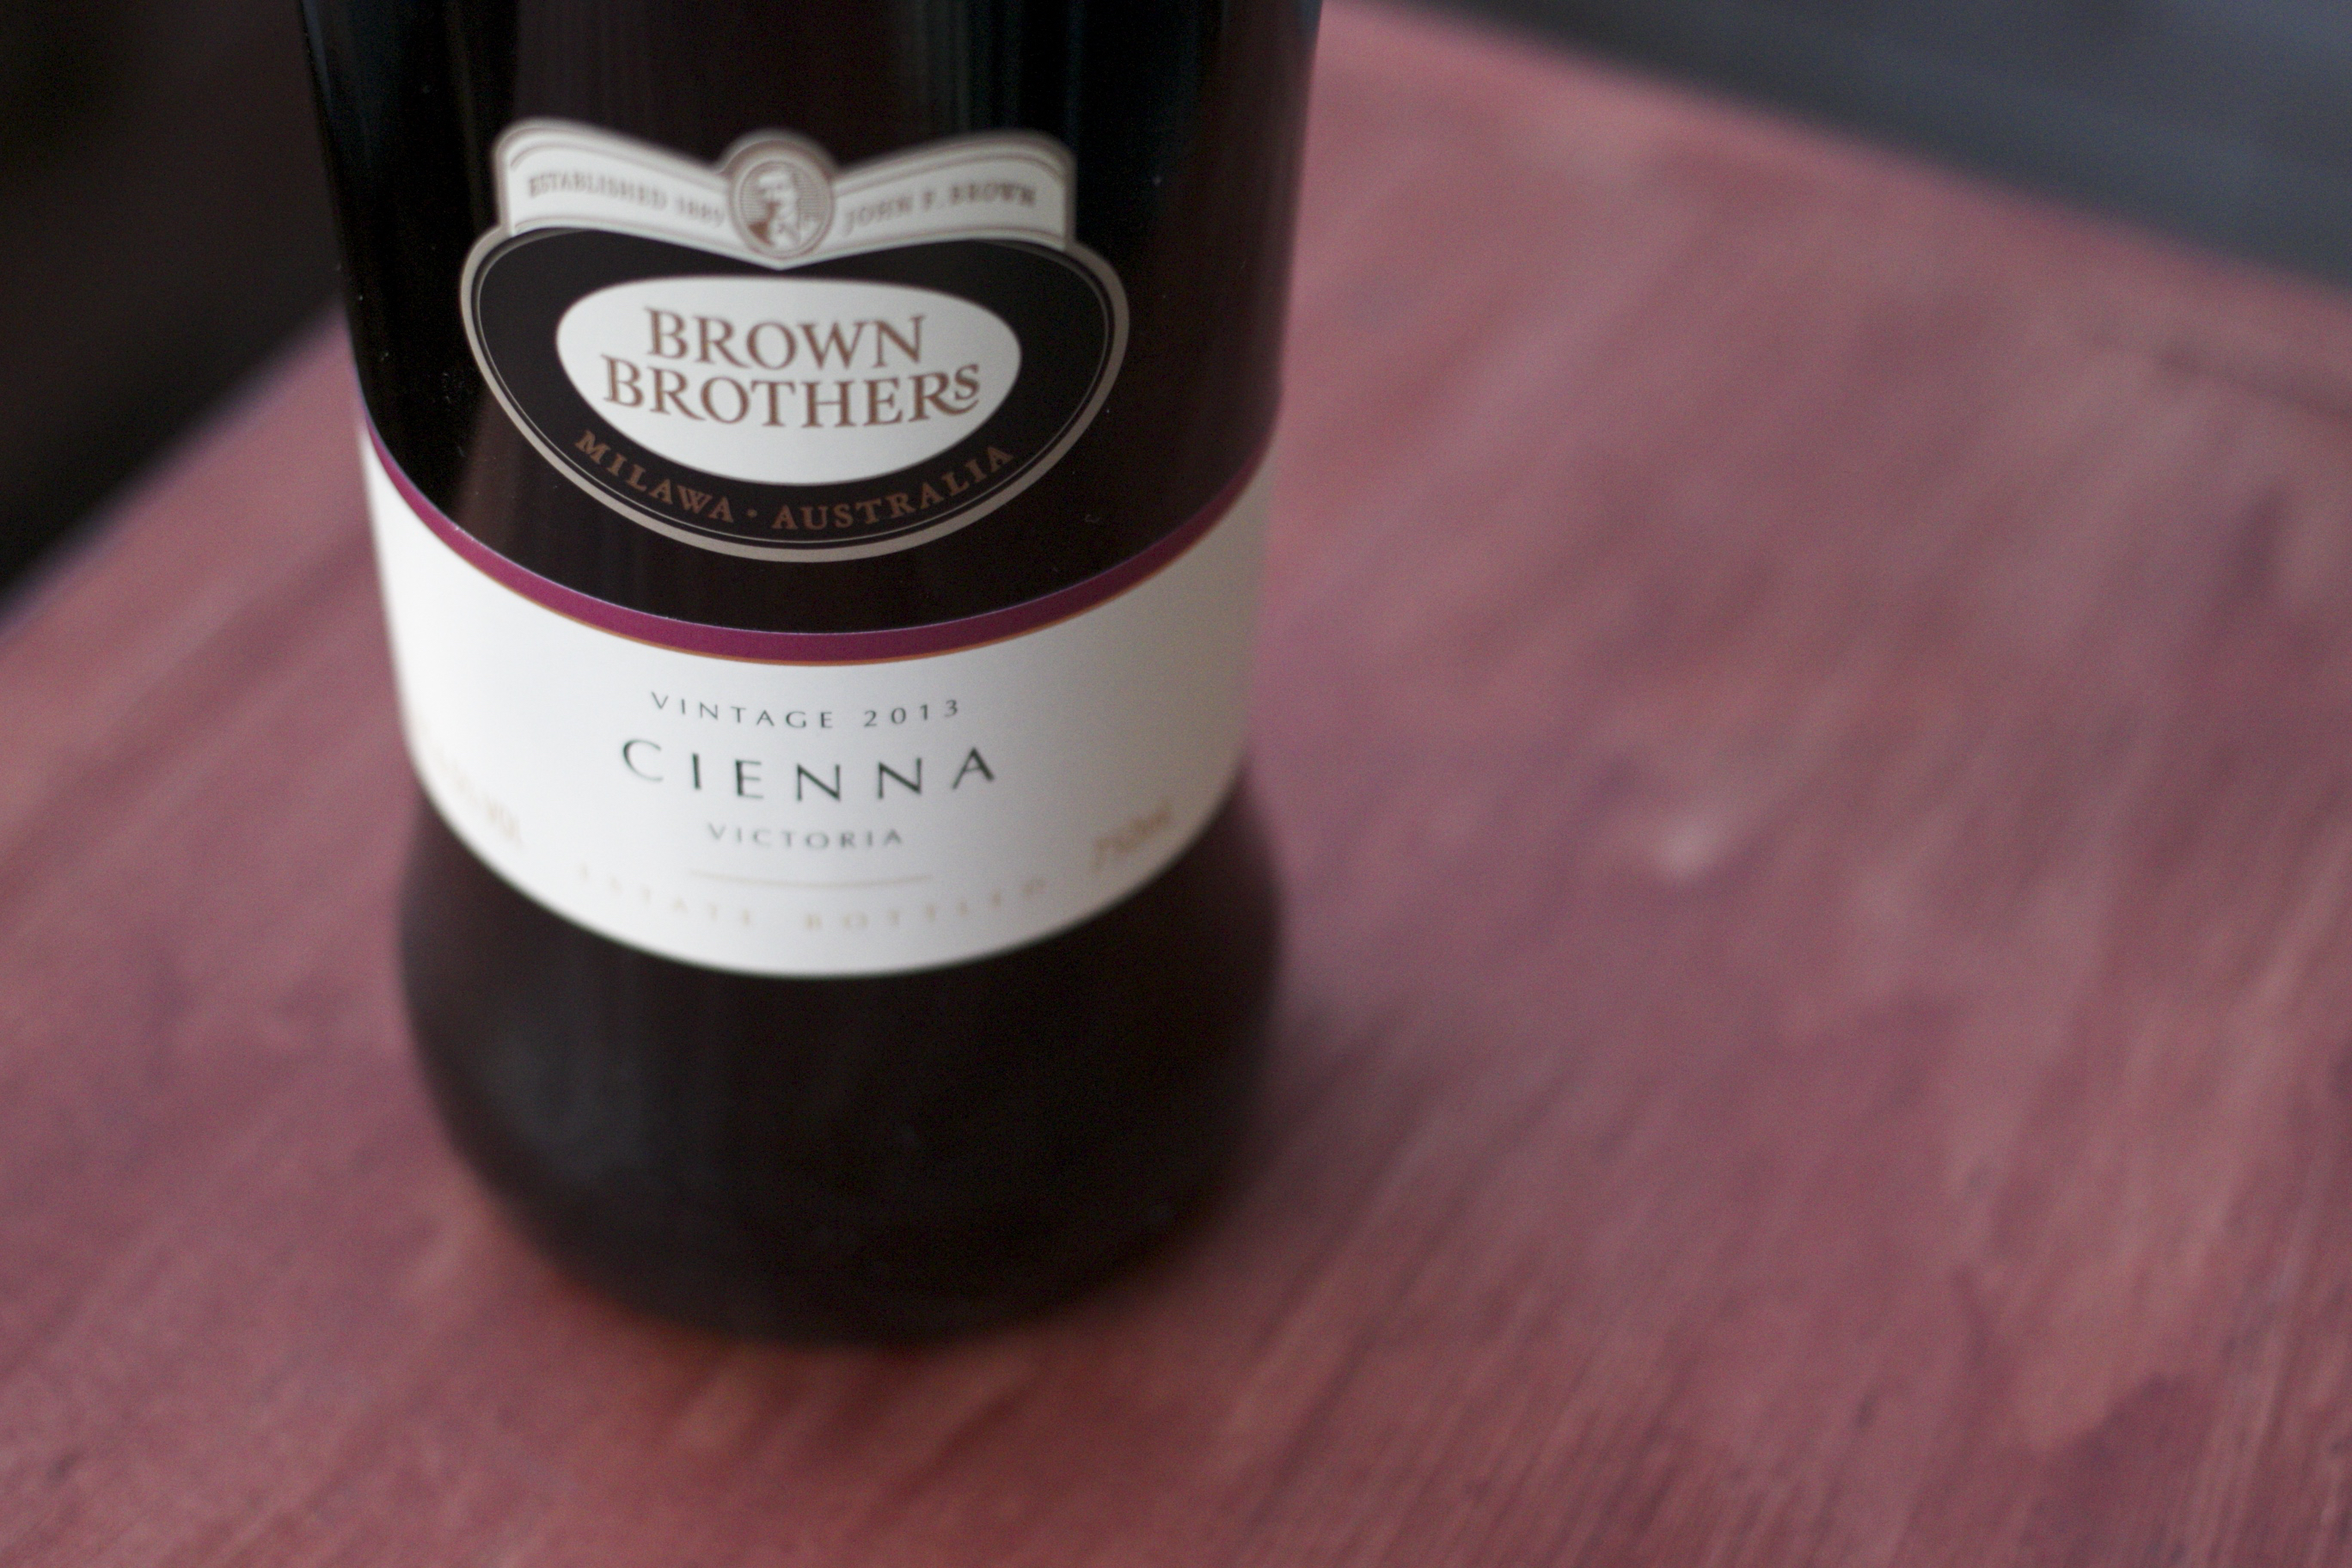 medium close shot of wine bottle with label - Brown Brothers, Cienna